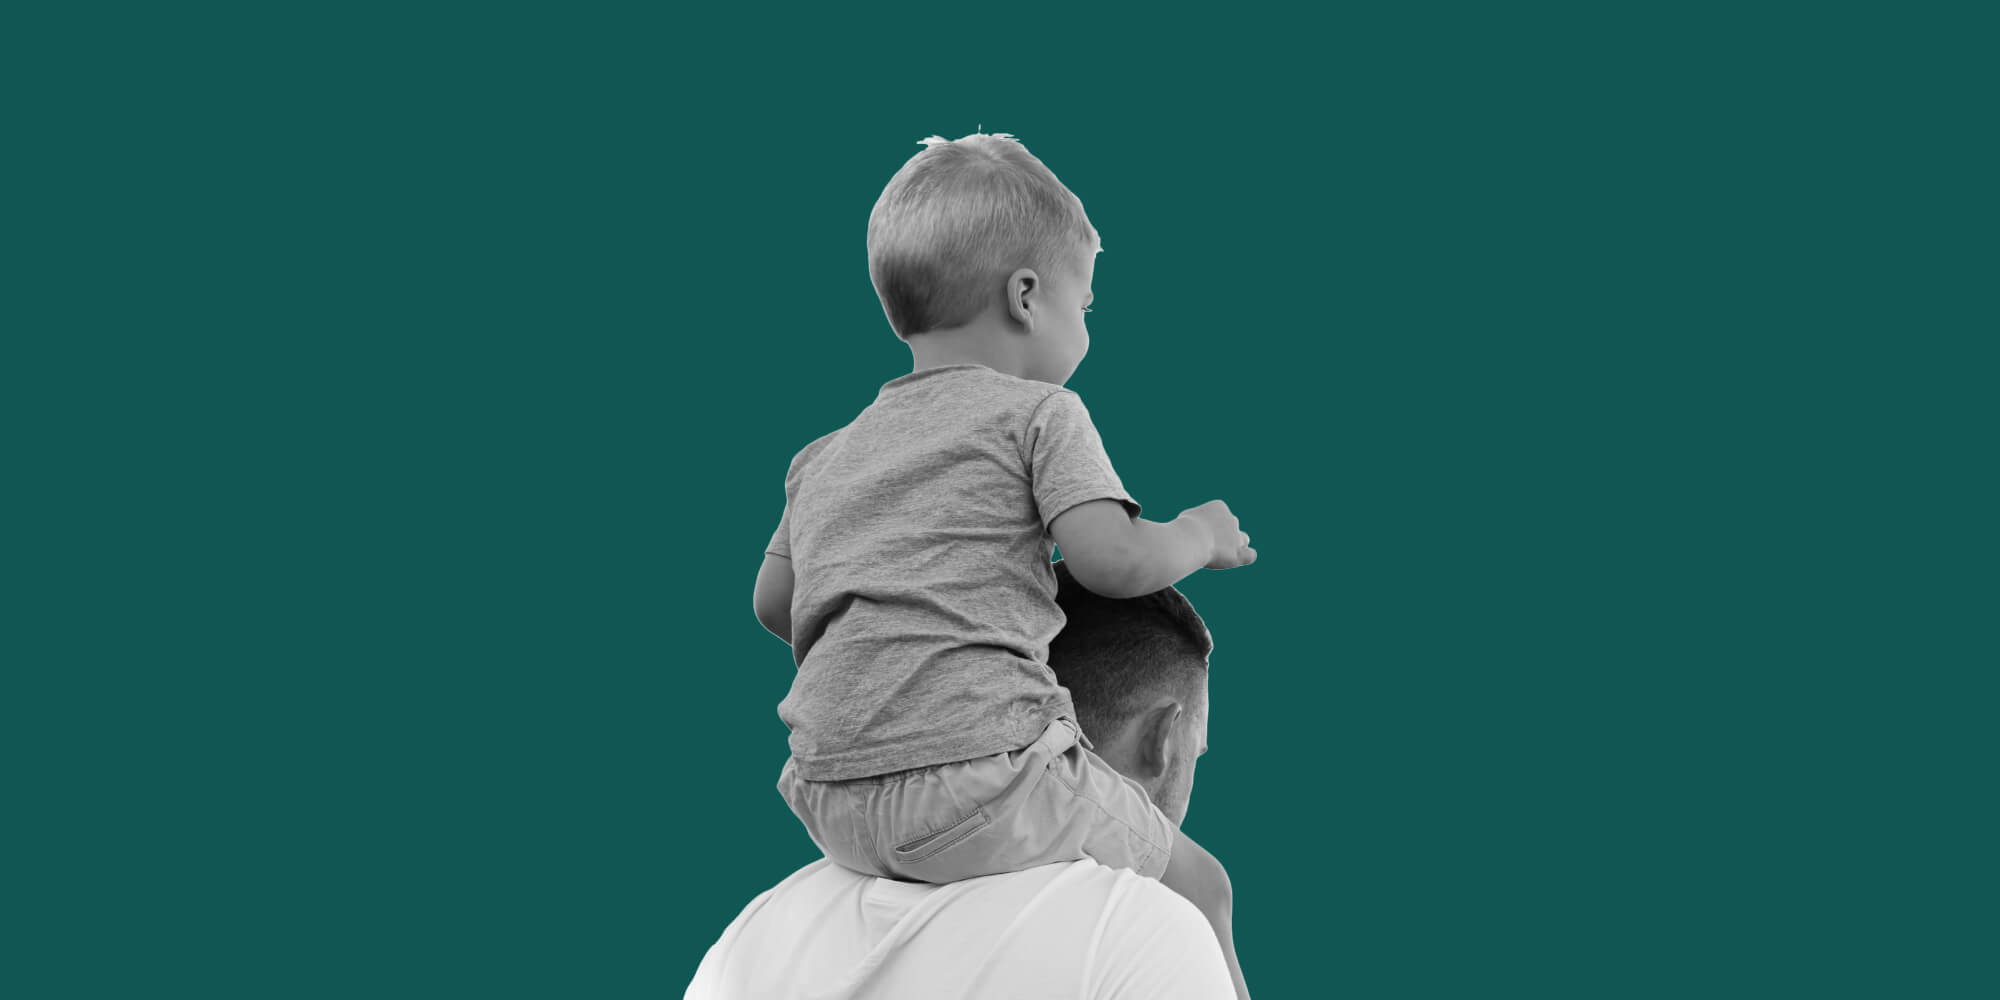 Small child on his father's shoulders. Recovery shapes fatherhood